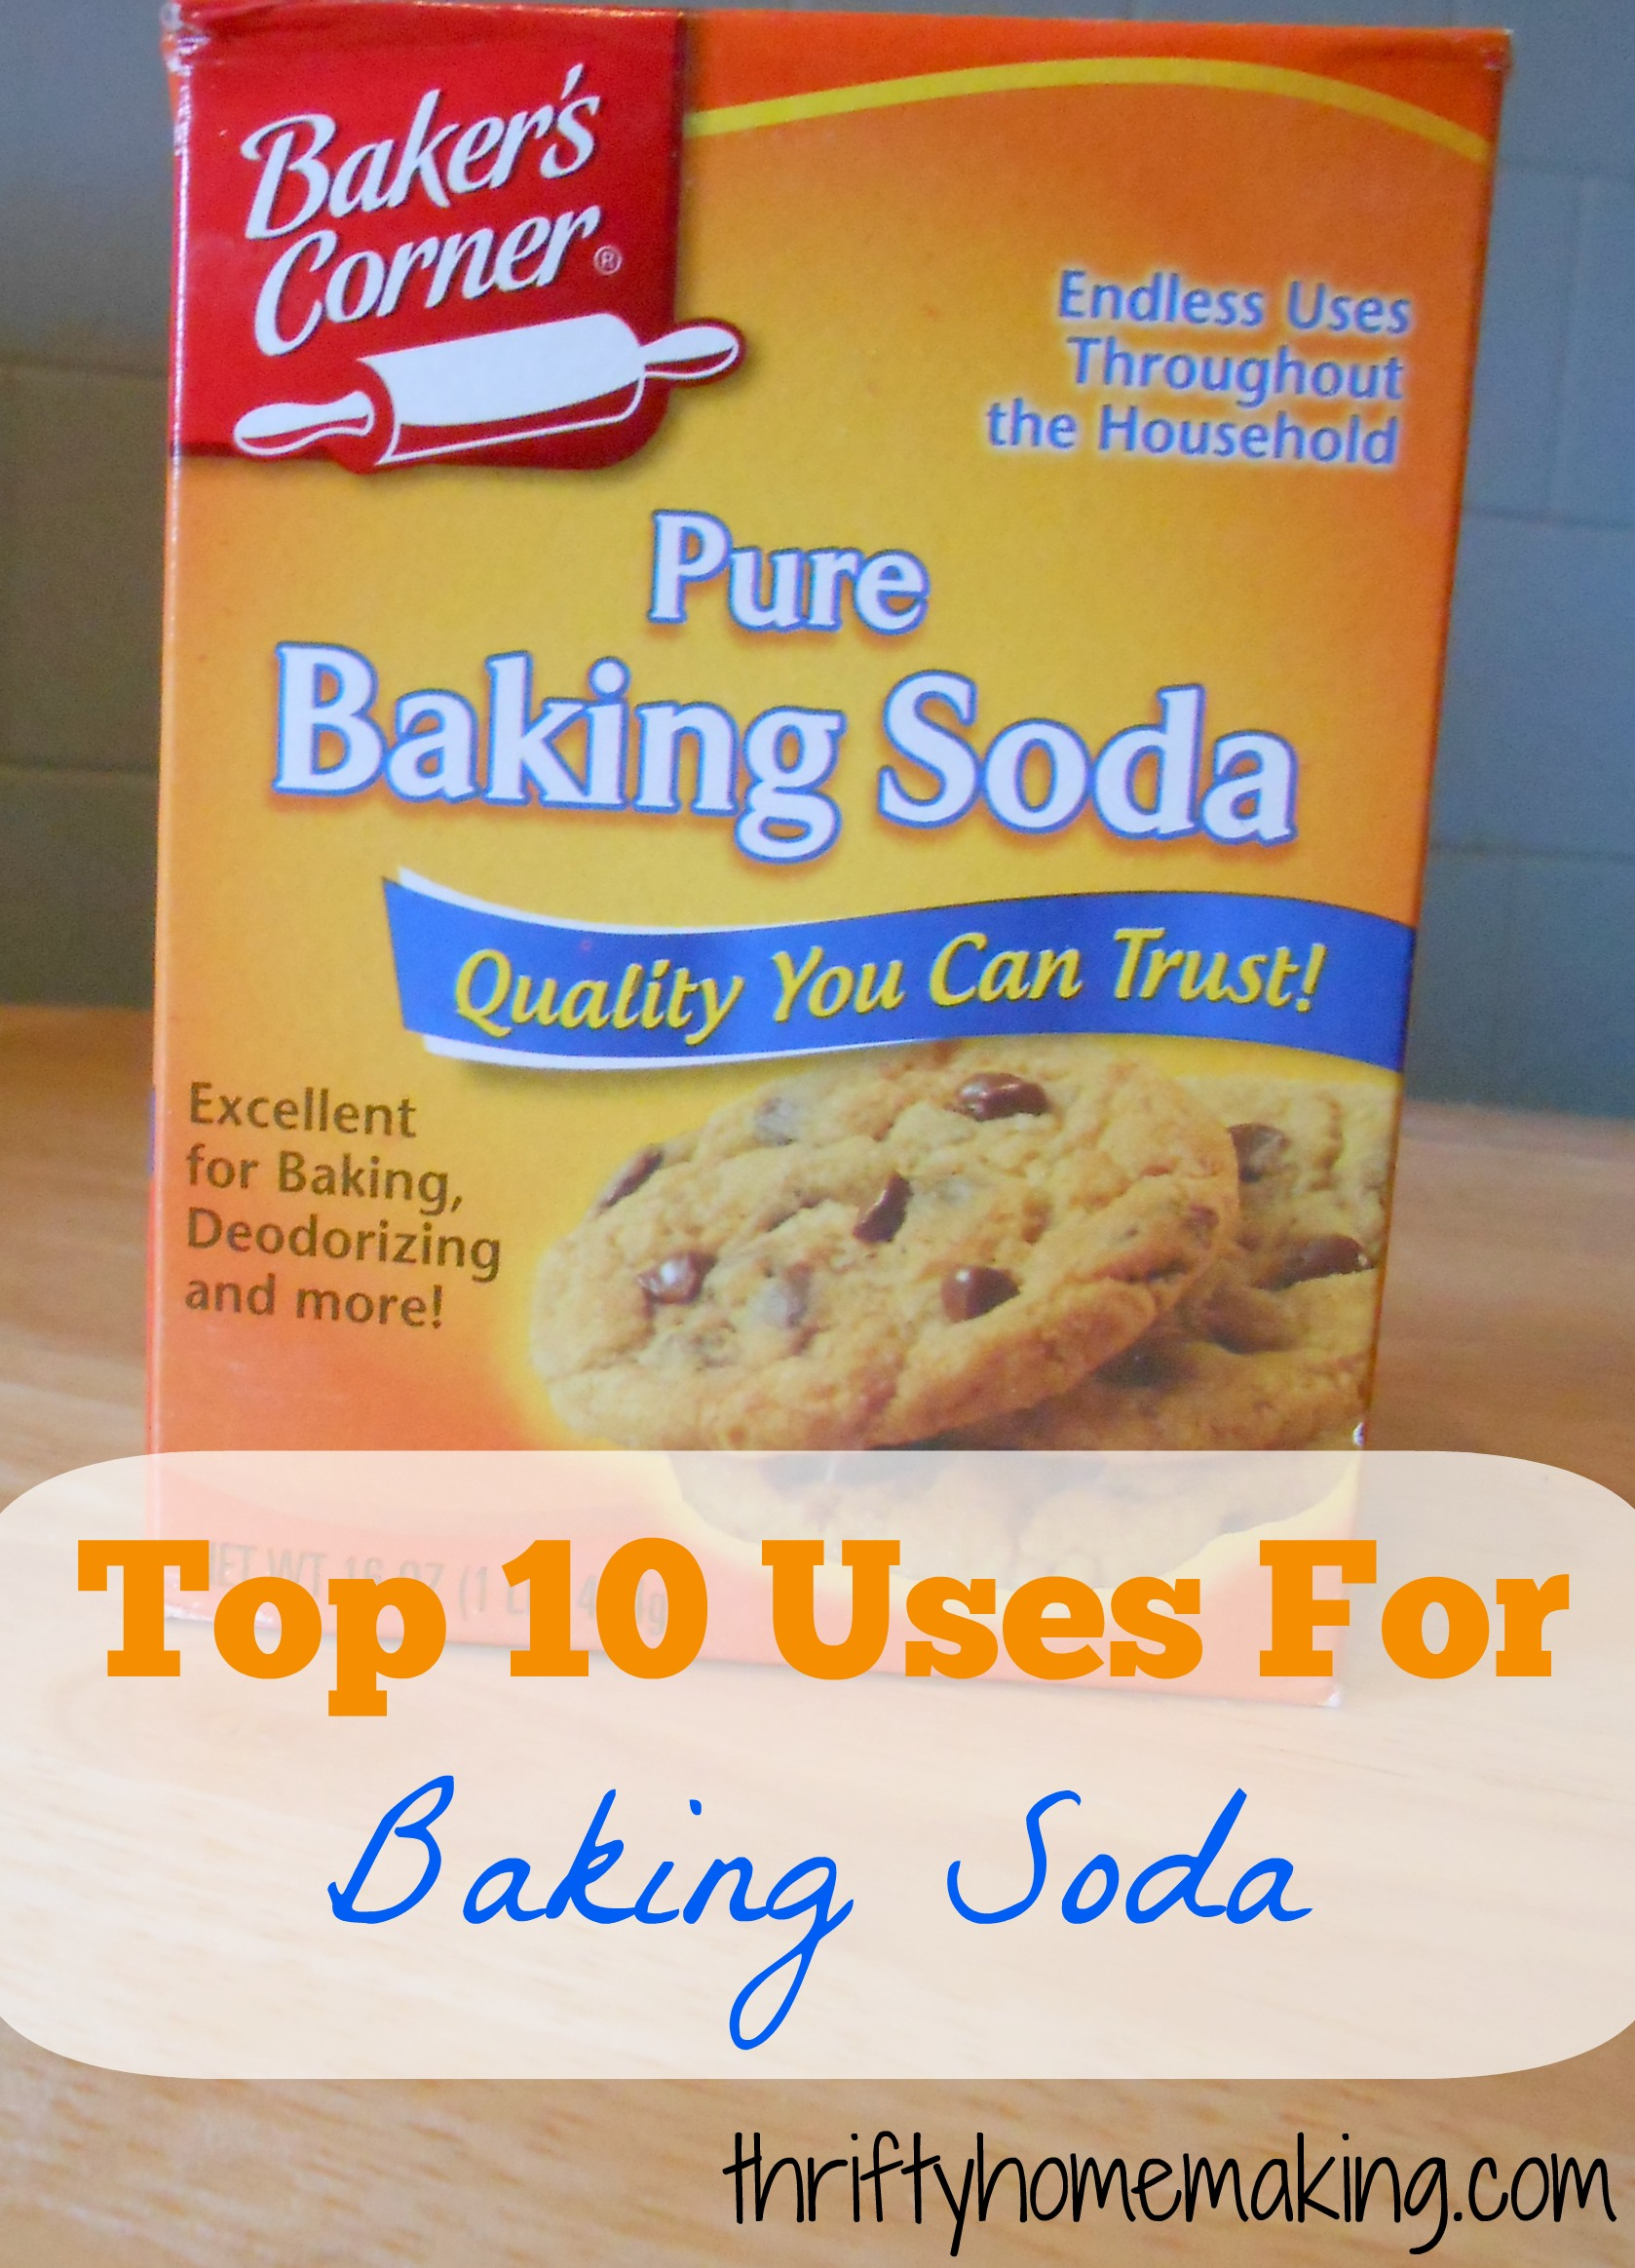 Top 10 uses for baking soda laura sue shaw - Things never clean baking soda ...